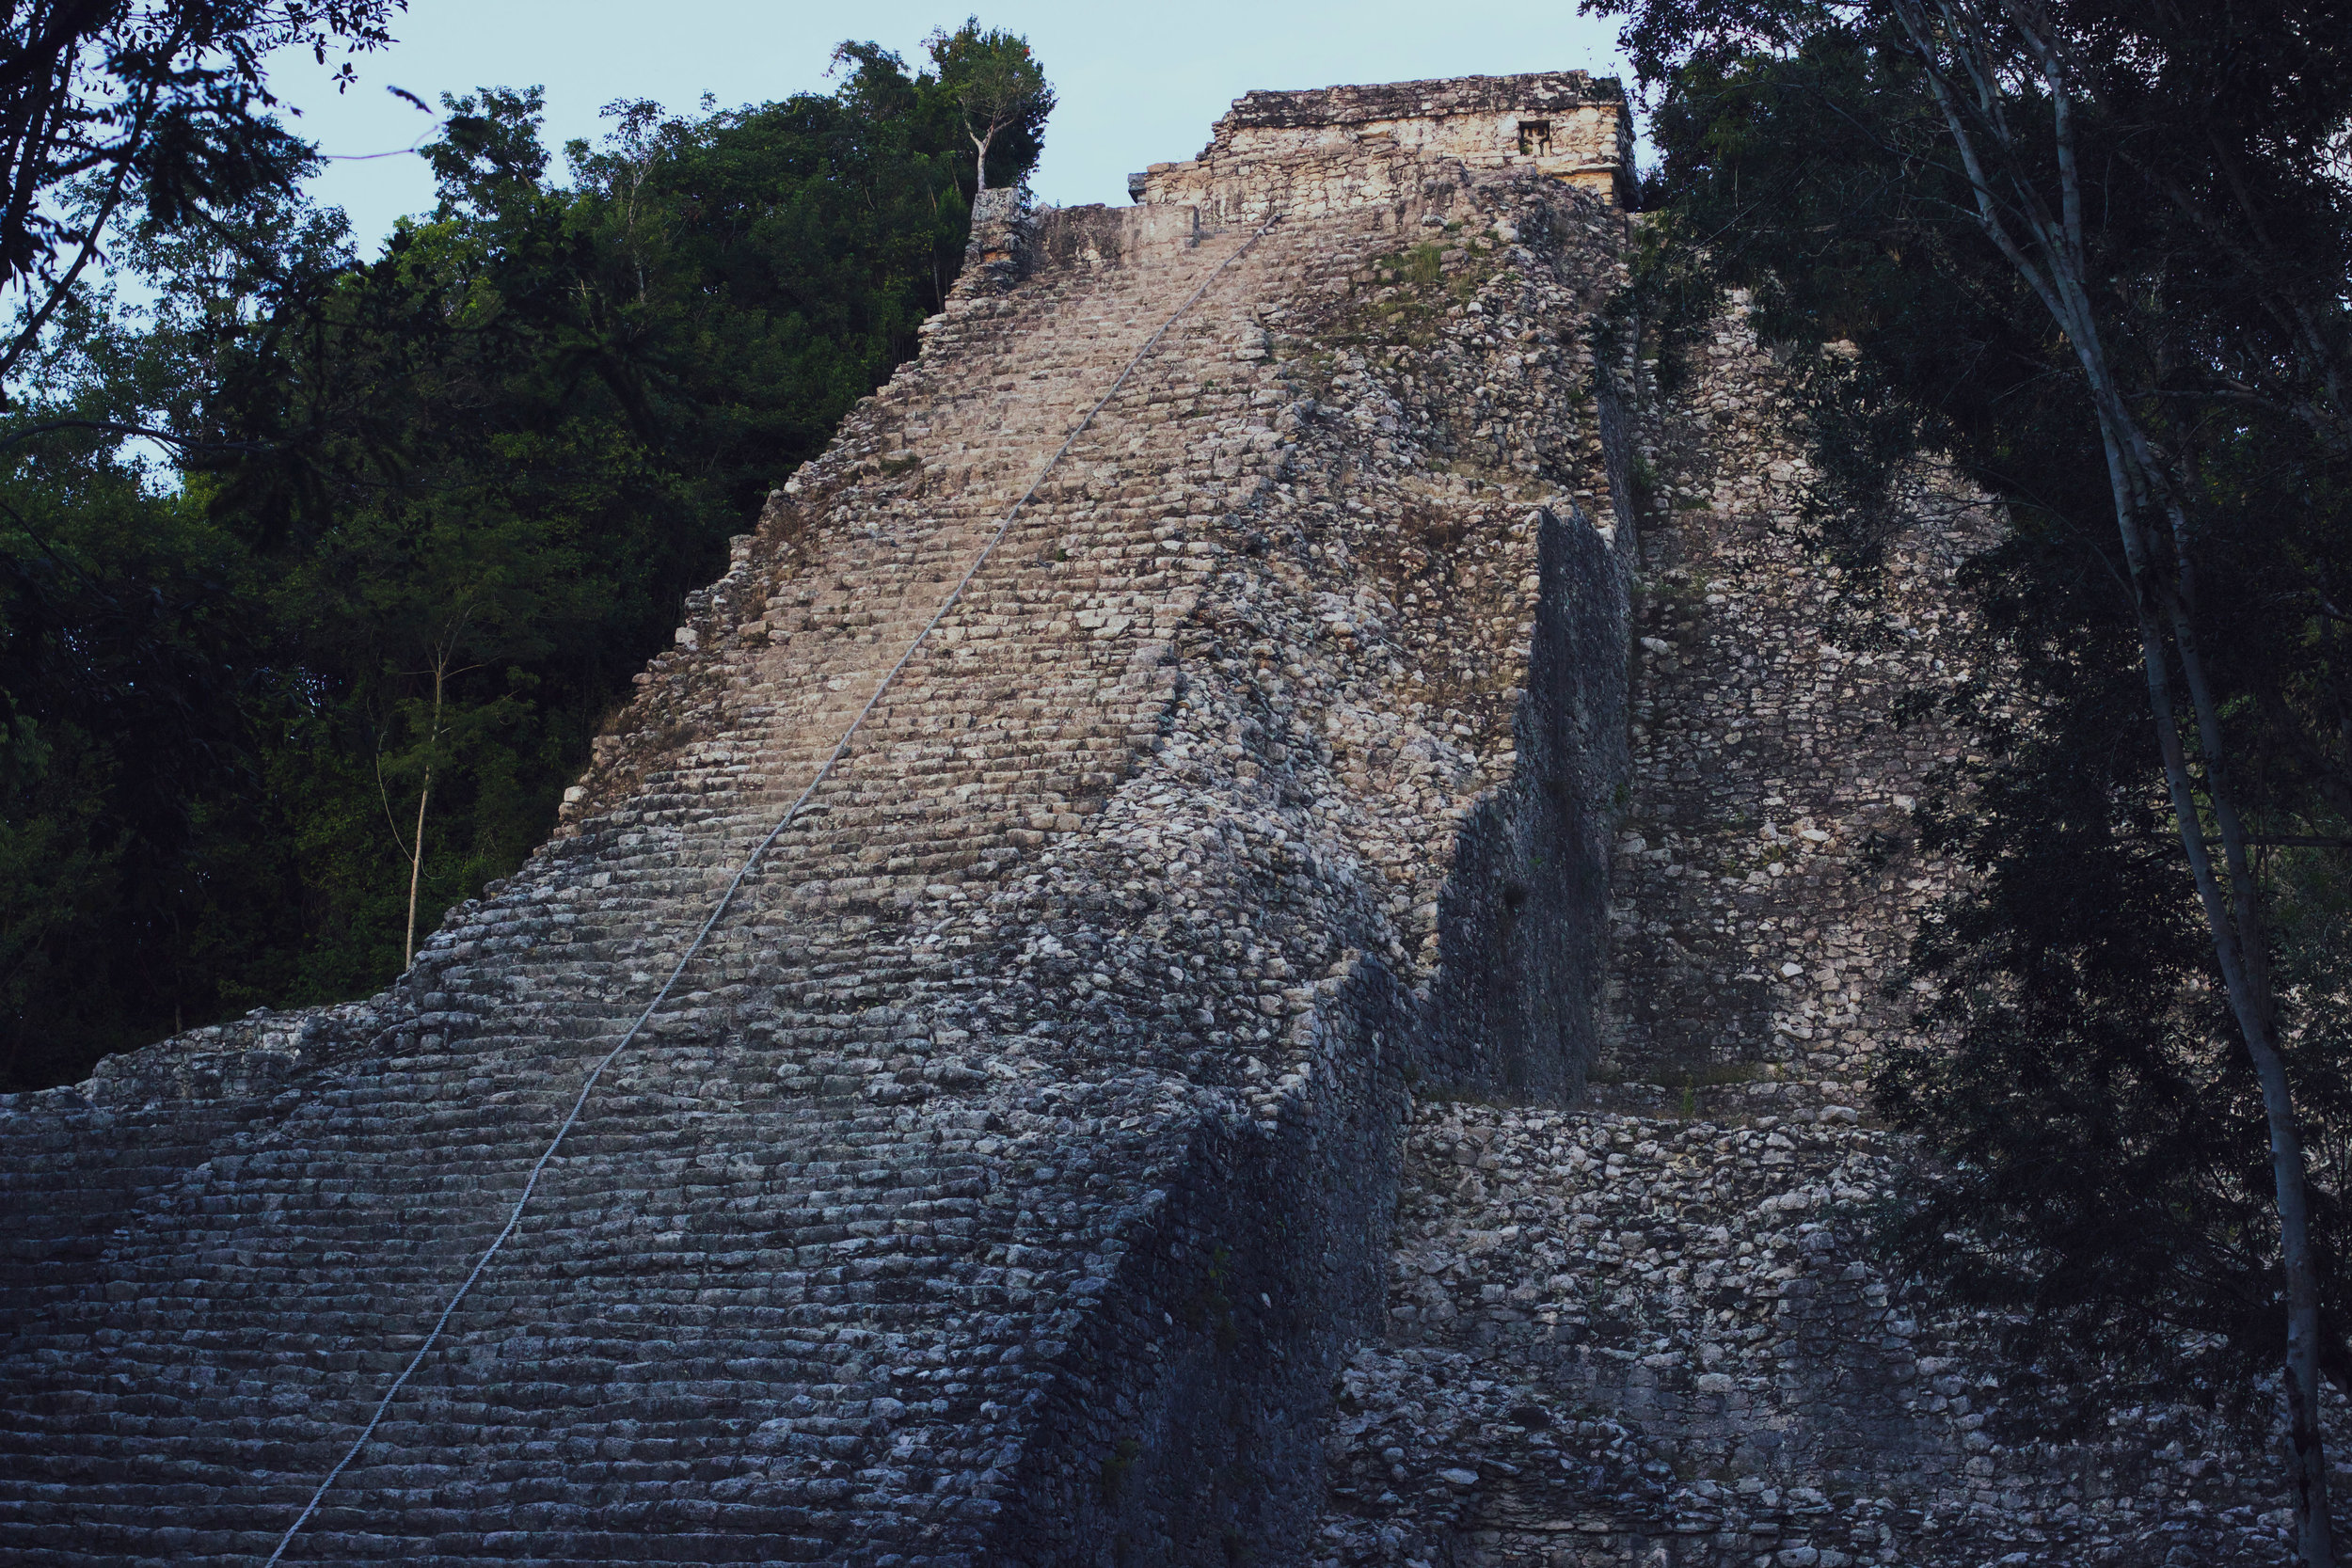 Maya_Luxe_Luxury_Villa_Rentals_Experiences_Magazine_The_Queens_of_Coba_Atop_The_Tallest_Temple_2.jpg